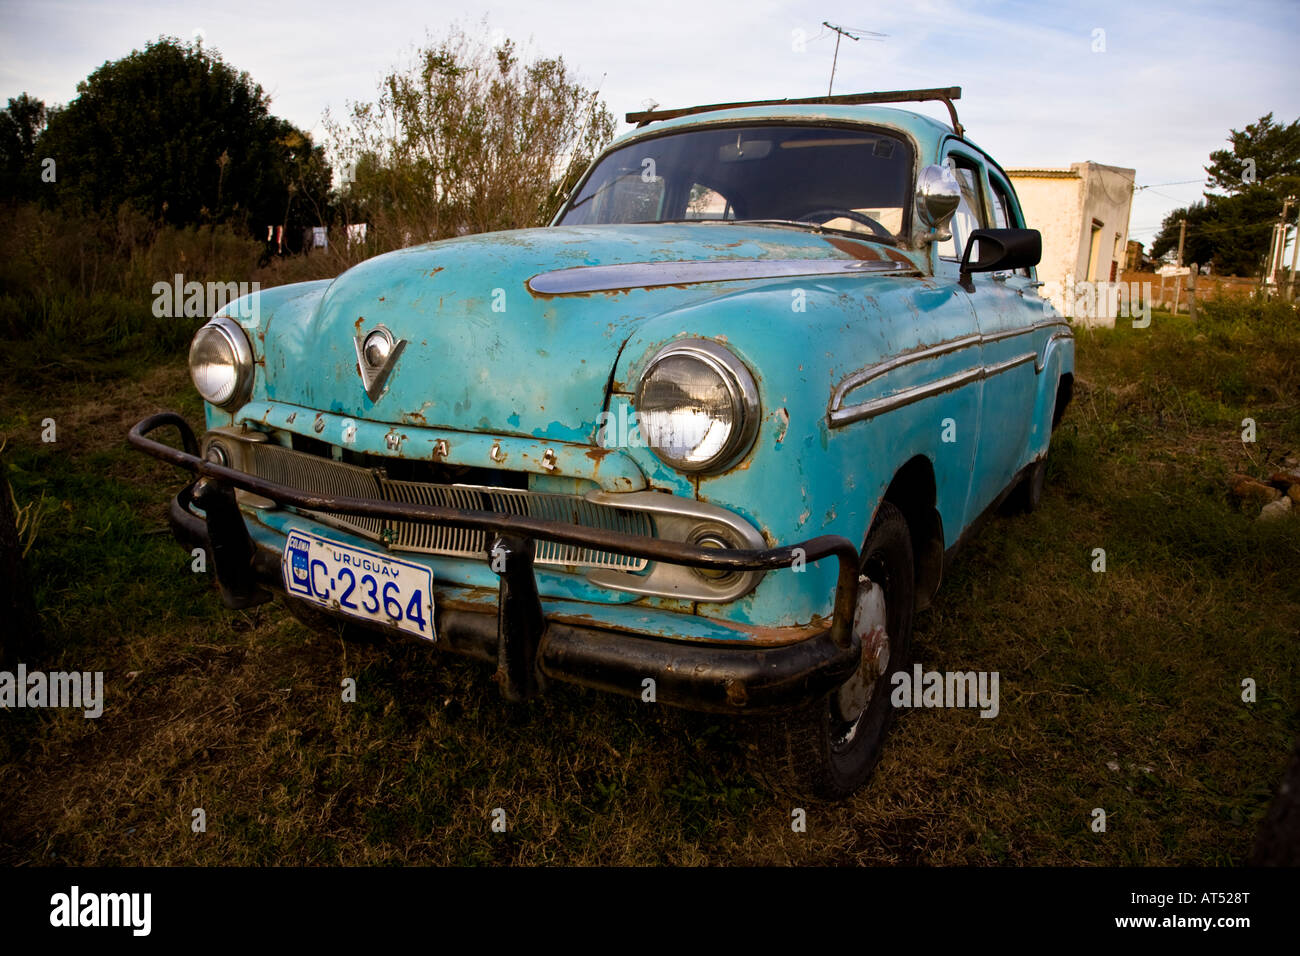 in the streets of Colonia Uruguay Old and rare cars are abundant in ...